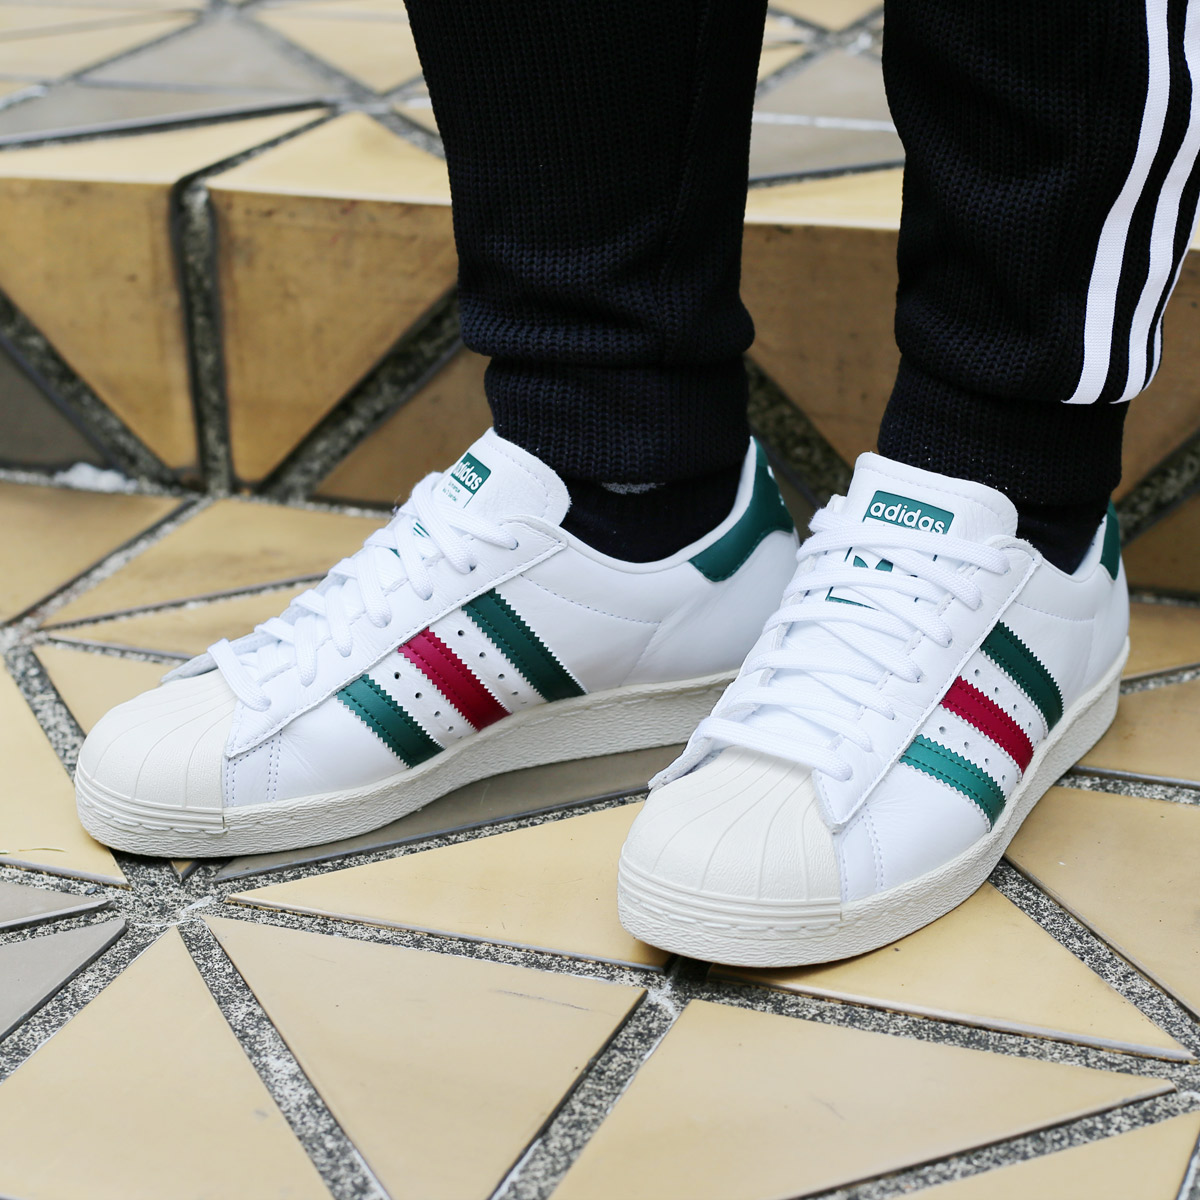 adidas Originals SUPERSTAR 80s (Adidas originals